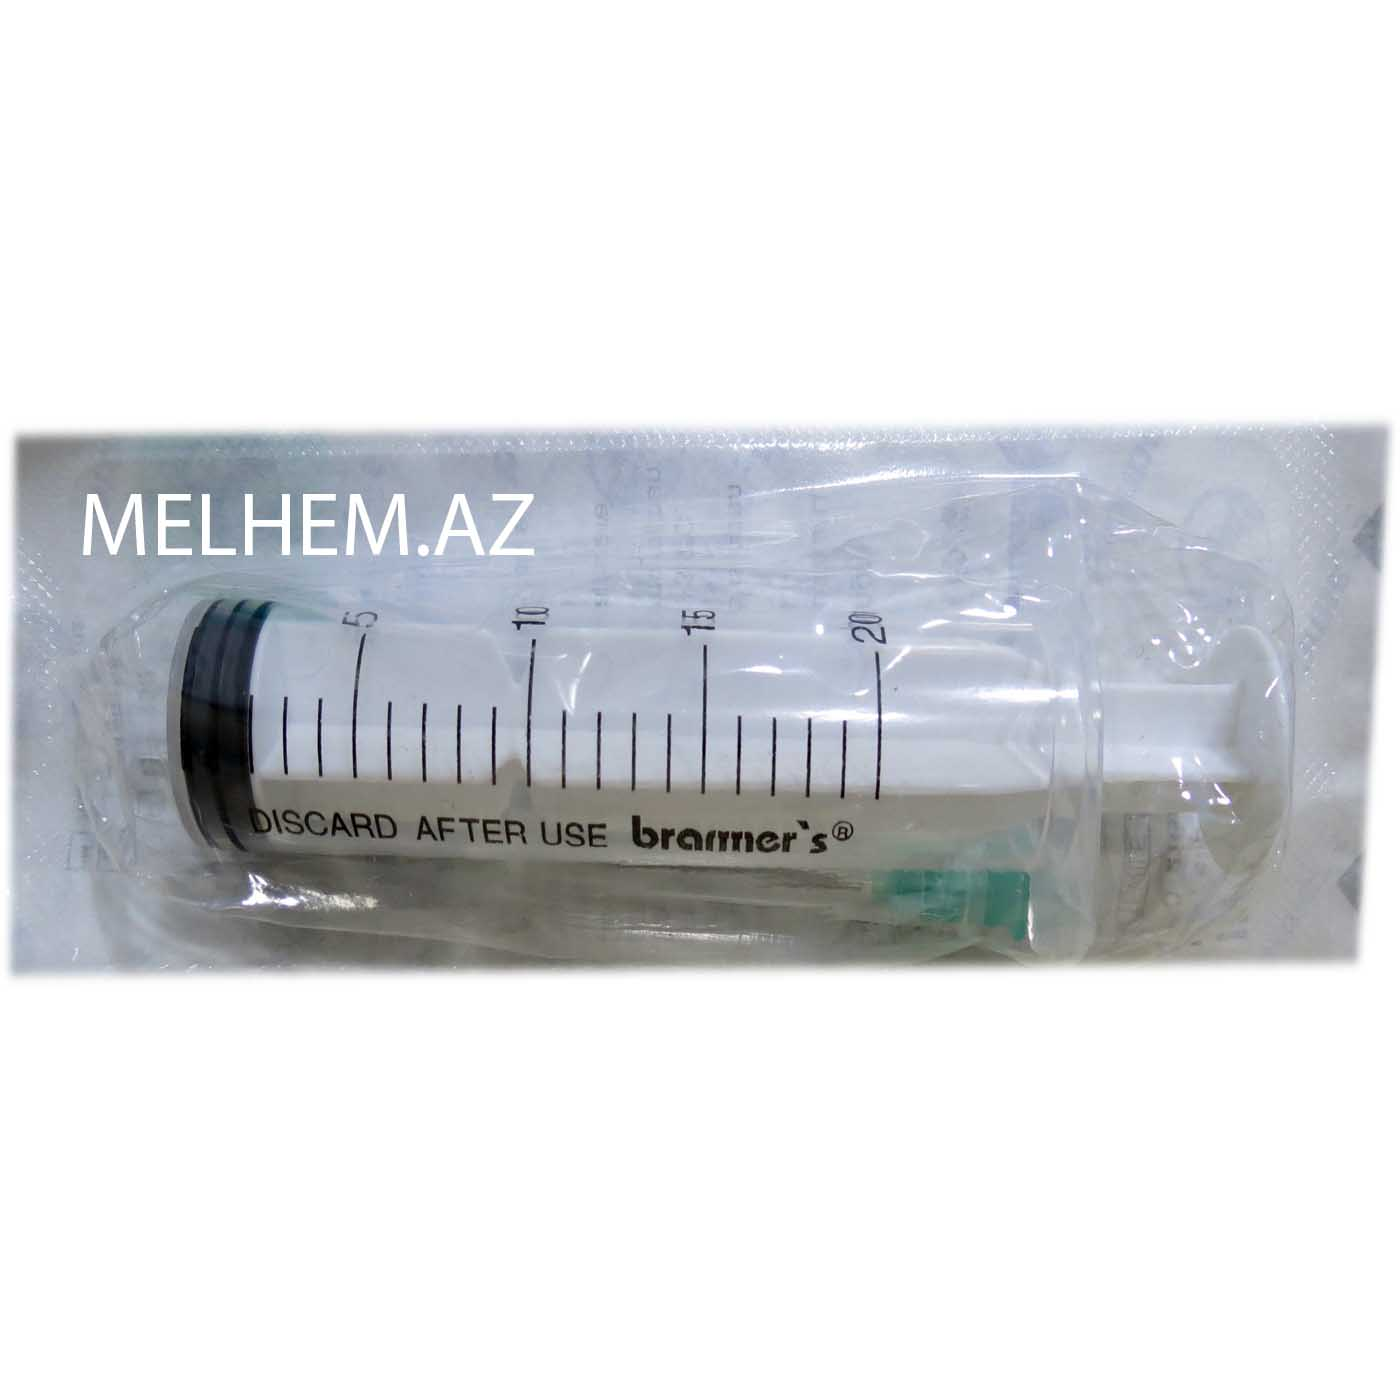 ŞPRİS 20 ml